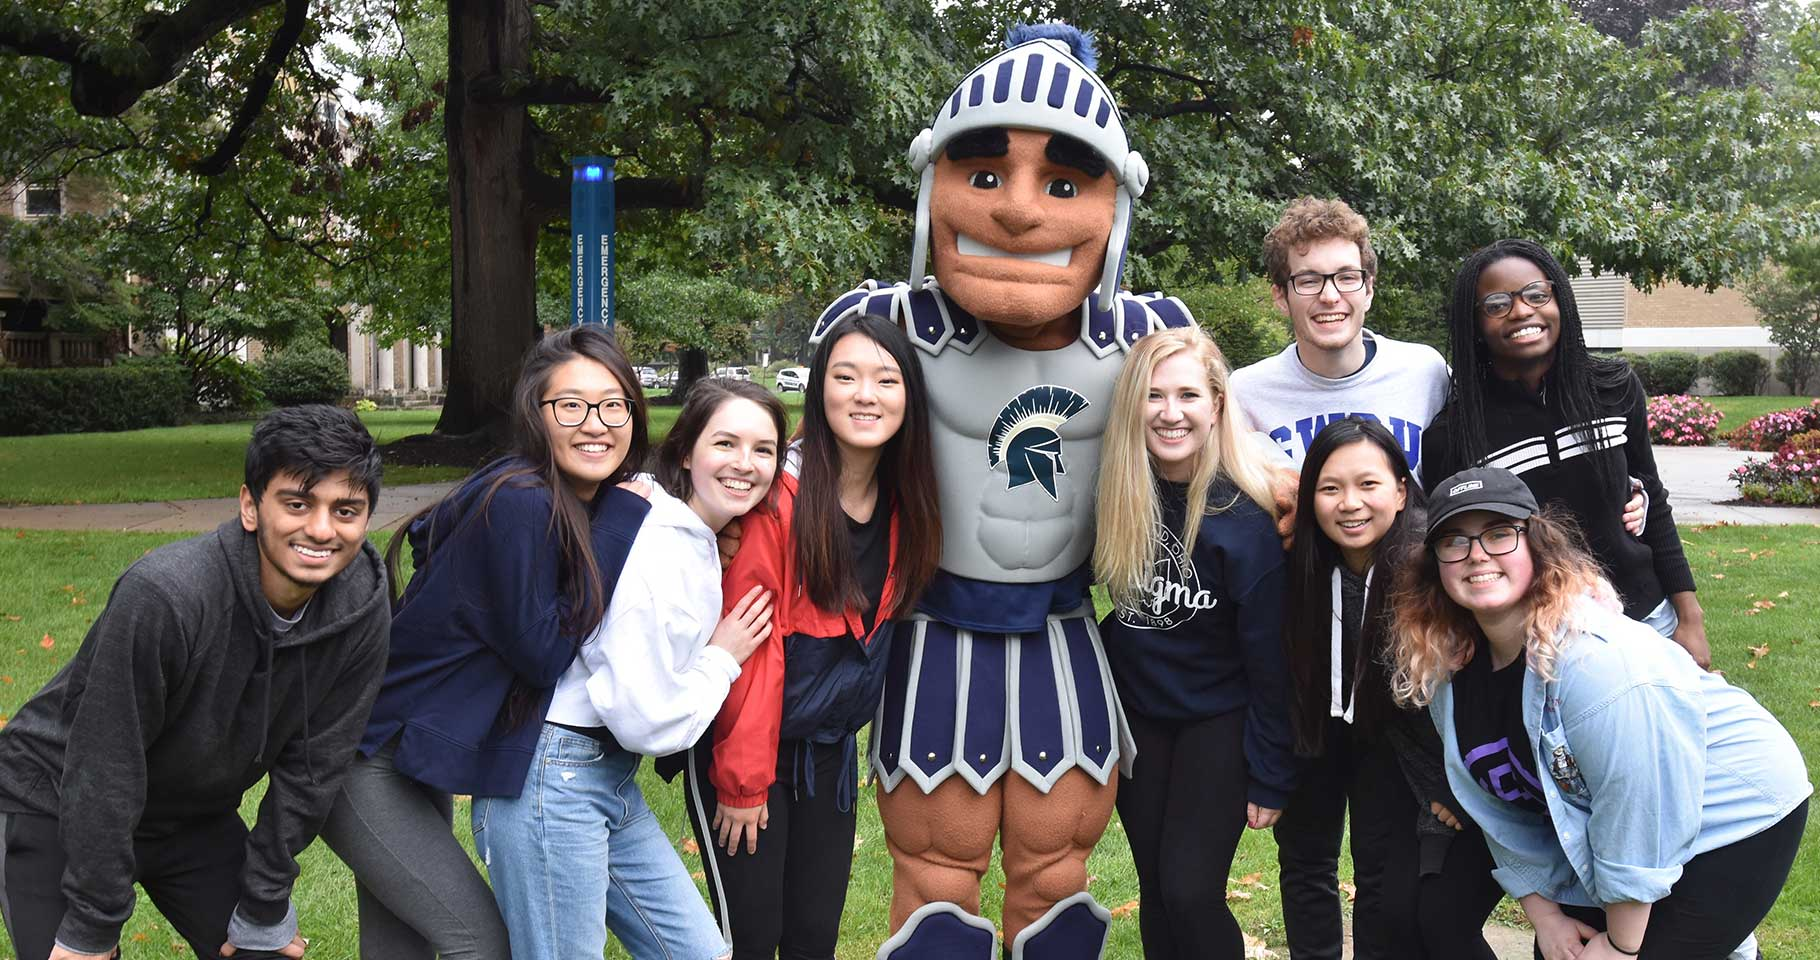 CWRU students with mascot at homecoming